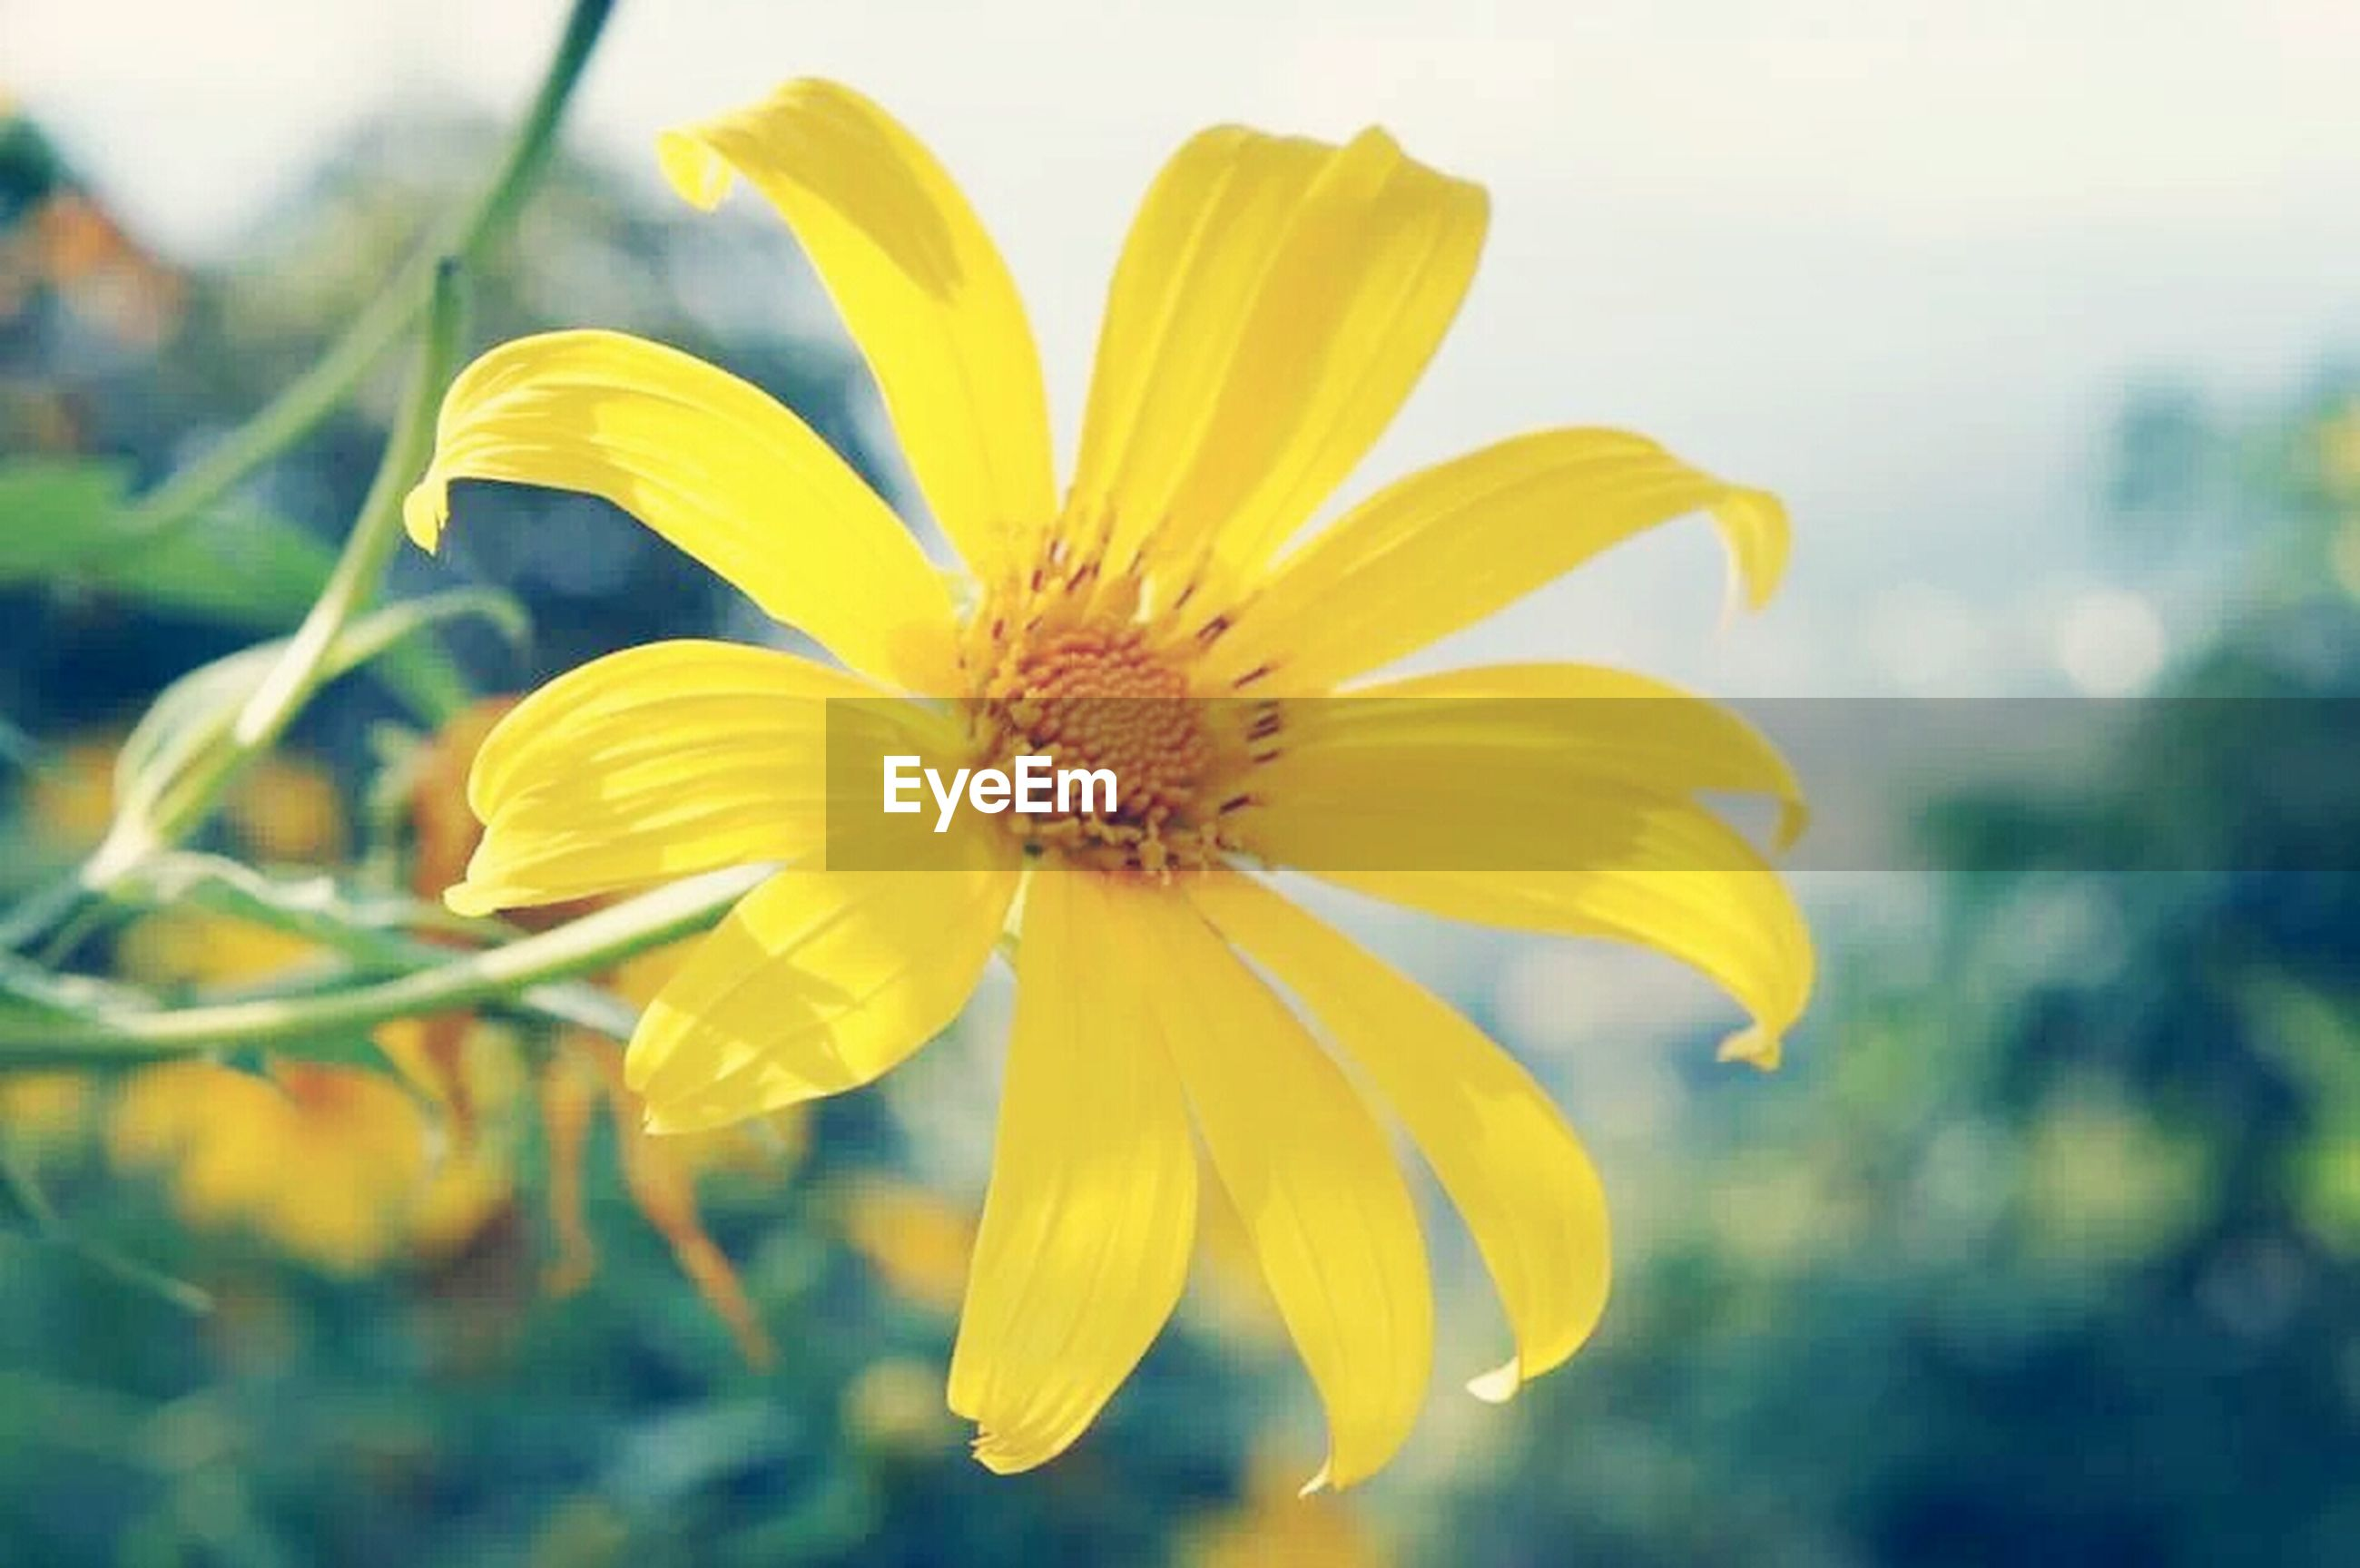 flower, petal, yellow, freshness, flower head, fragility, growth, close-up, focus on foreground, beauty in nature, single flower, pollen, blooming, nature, plant, in bloom, stamen, blossom, outdoors, day